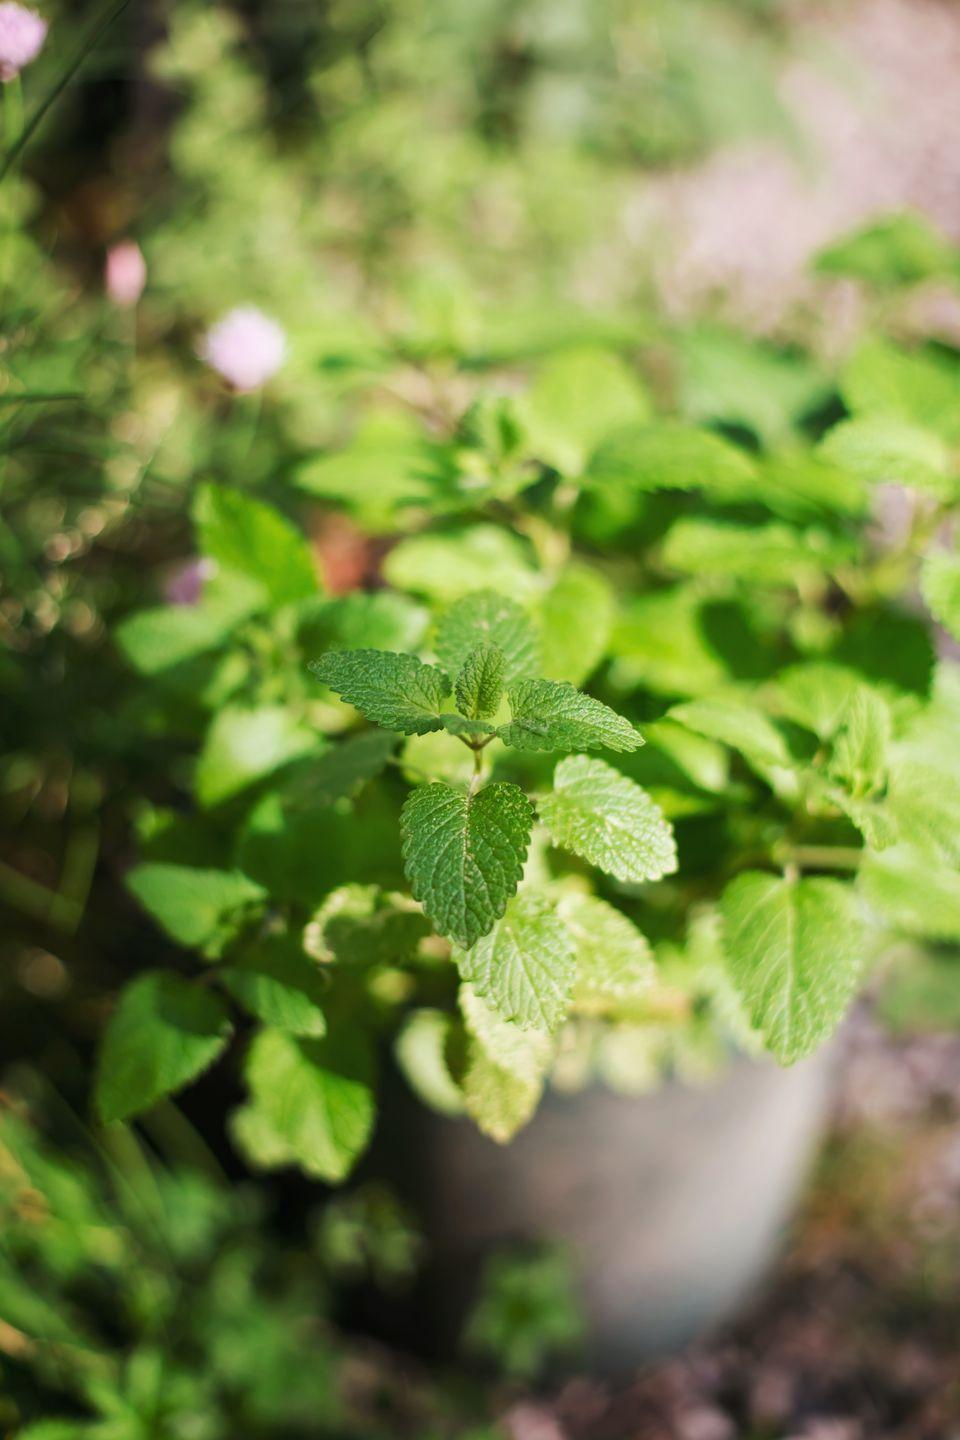 """<p>Mint is a brilliant natural pest repellent, thanks to its pungent smell. </p><p>'If you grow fresh mint in your <a href=""""https://www.housebeautiful.com/uk/decorate/kitchen/g37409102/white-kitchen/"""" rel=""""nofollow noopener"""" target=""""_blank"""" data-ylk=""""slk:kitchen"""" class=""""link rapid-noclick-resp"""">kitchen</a>, pluck a few leaves and add to a bottle topped with spray water and leave to absorb,' Evie says. 'By spraying this on the entry points to your home, any spiders hiding around windowsills and doorways will retreat rapidly.'</p><p><a class=""""link rapid-noclick-resp"""" href=""""https://www.primrose.co.uk/garden-mint-plants-plants-plant-theory-p-136468.html"""" rel=""""nofollow noopener"""" target=""""_blank"""" data-ylk=""""slk:BUY NOW"""">BUY NOW</a></p>"""